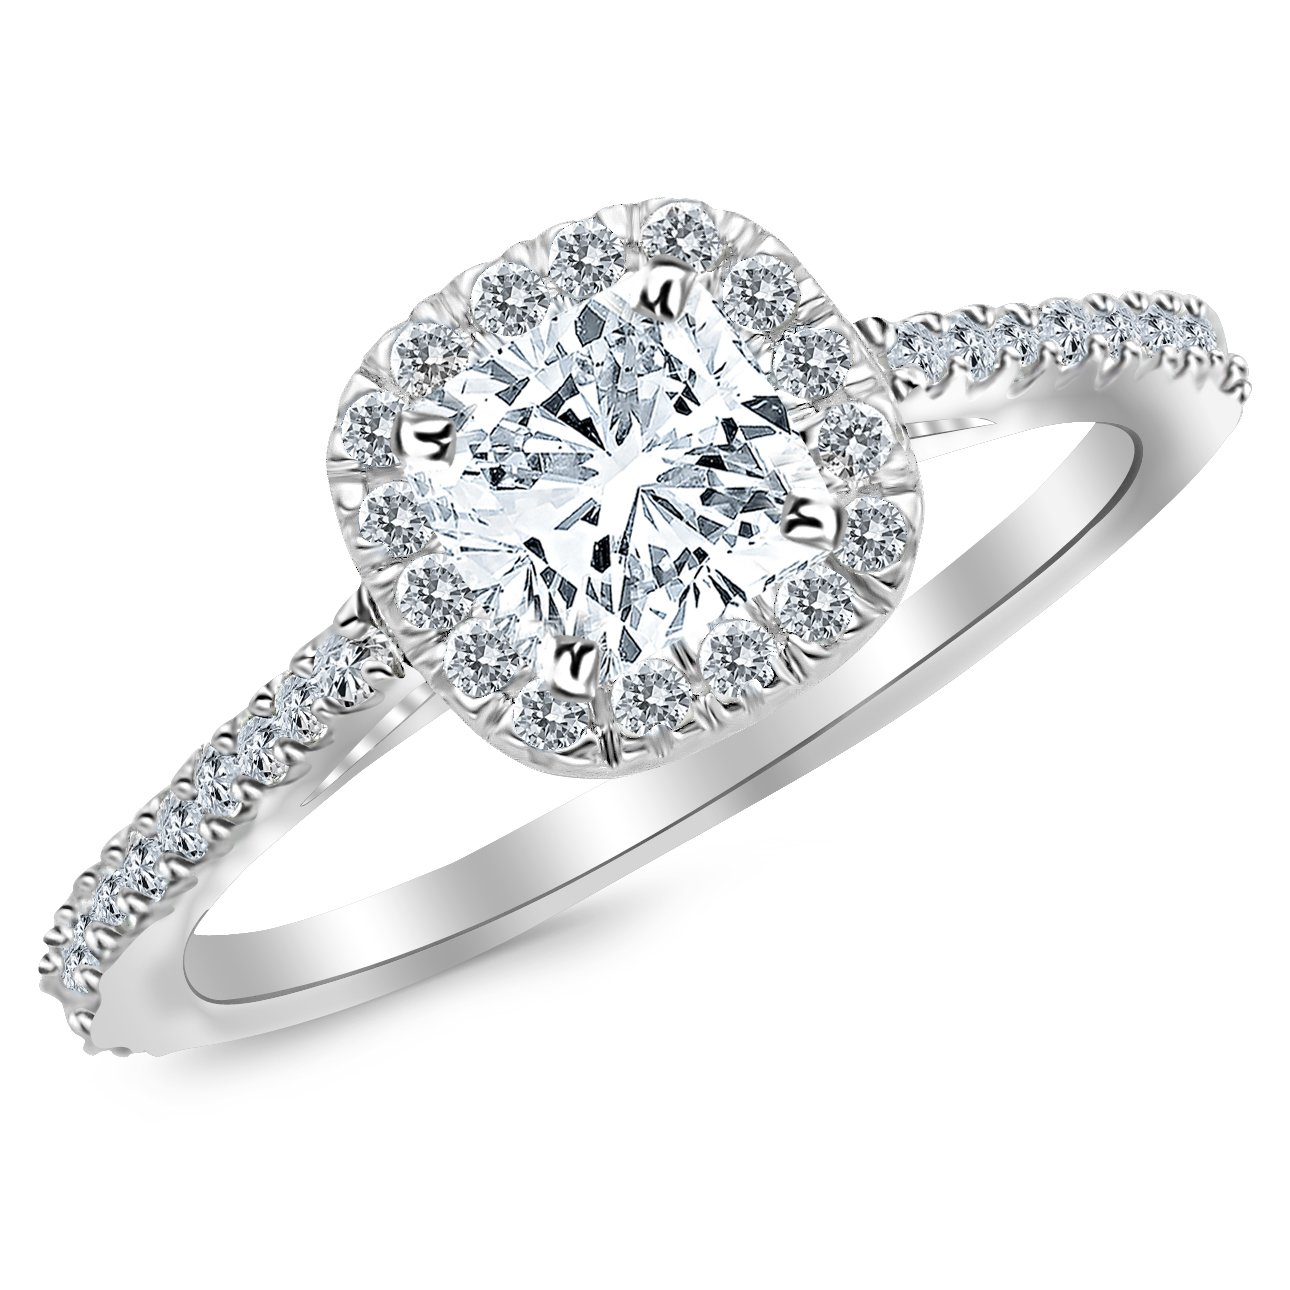 ring prong rings ladies classic engagement tiffany setting platinum w solitaire style six